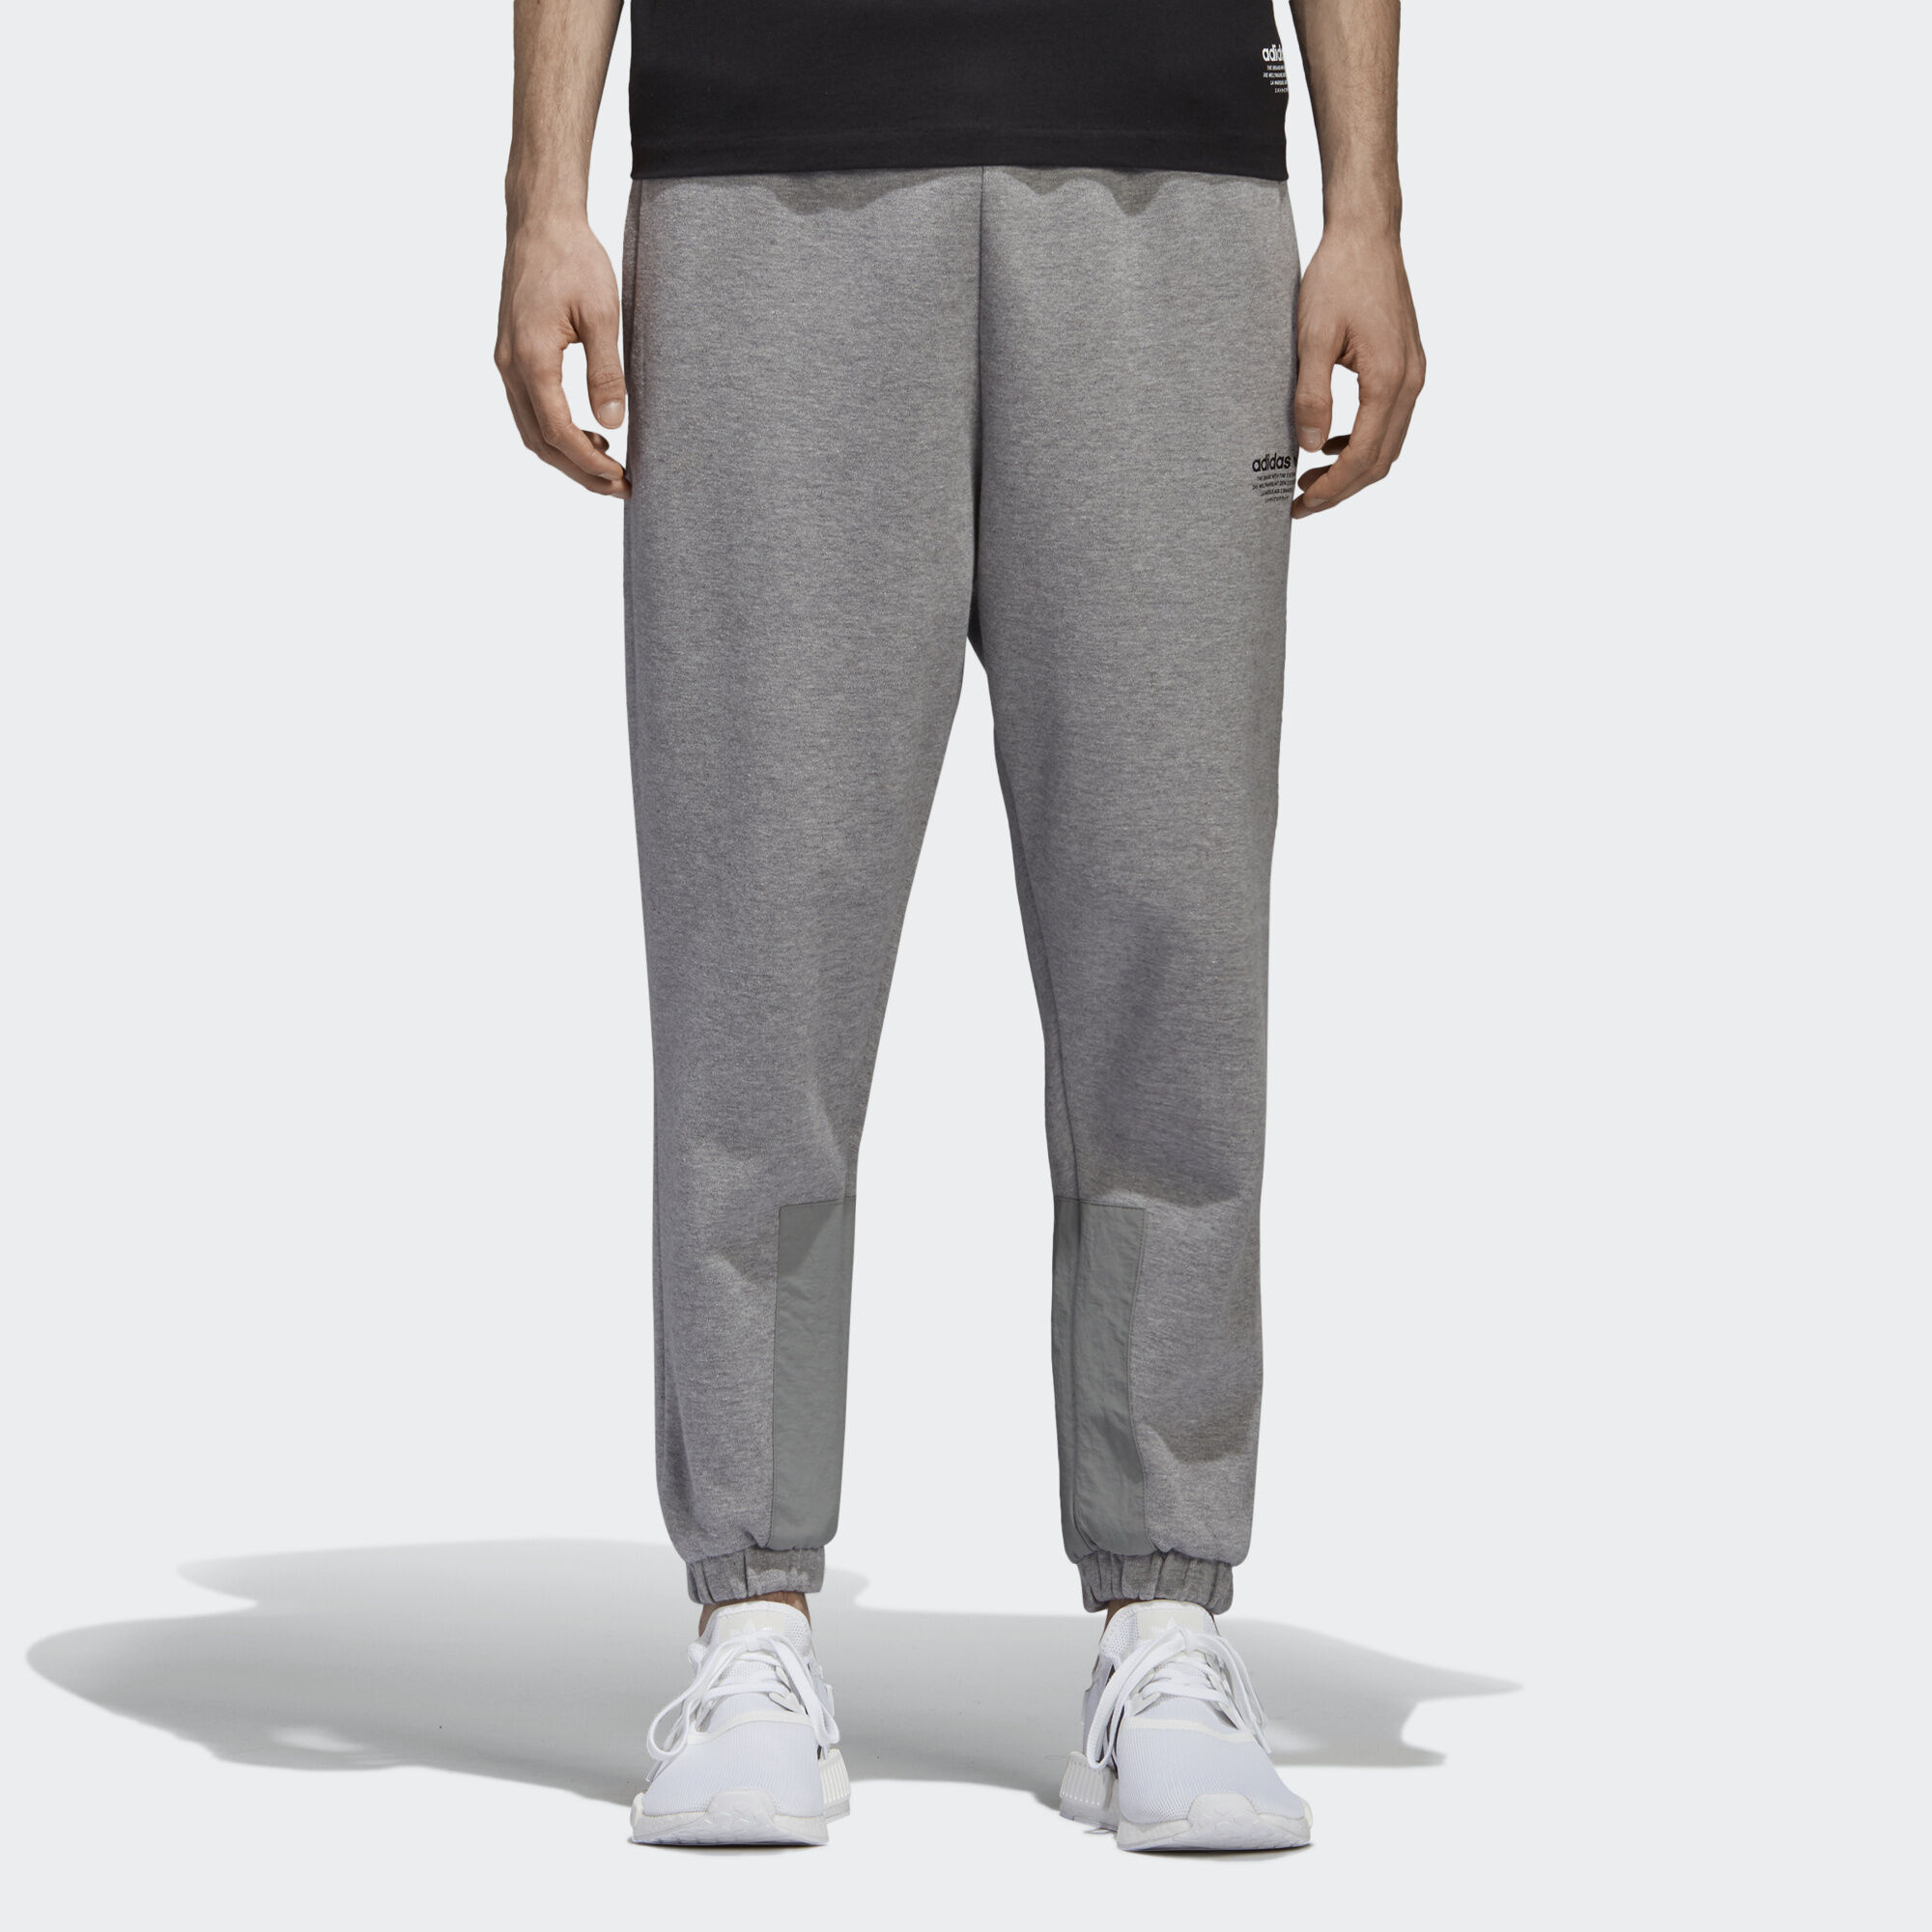 East Grey Pants Sweat Adidas Asiamiddle Nmd nBH11fP